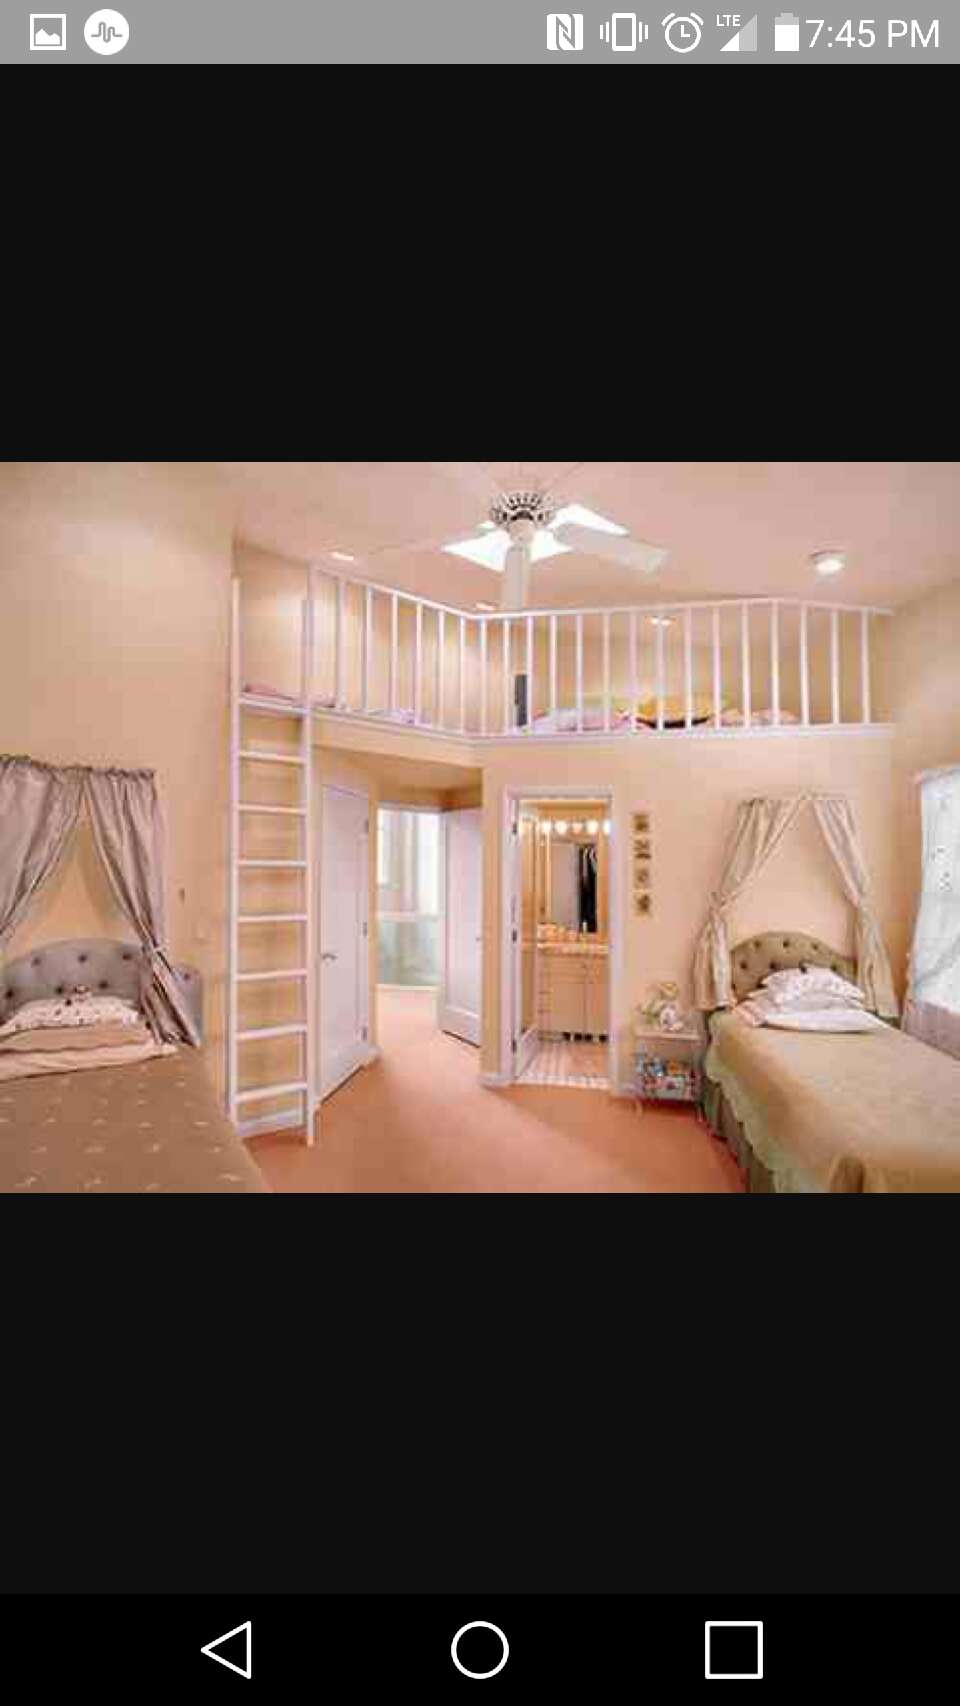 this room is good if you have a sister or 2 😊😊